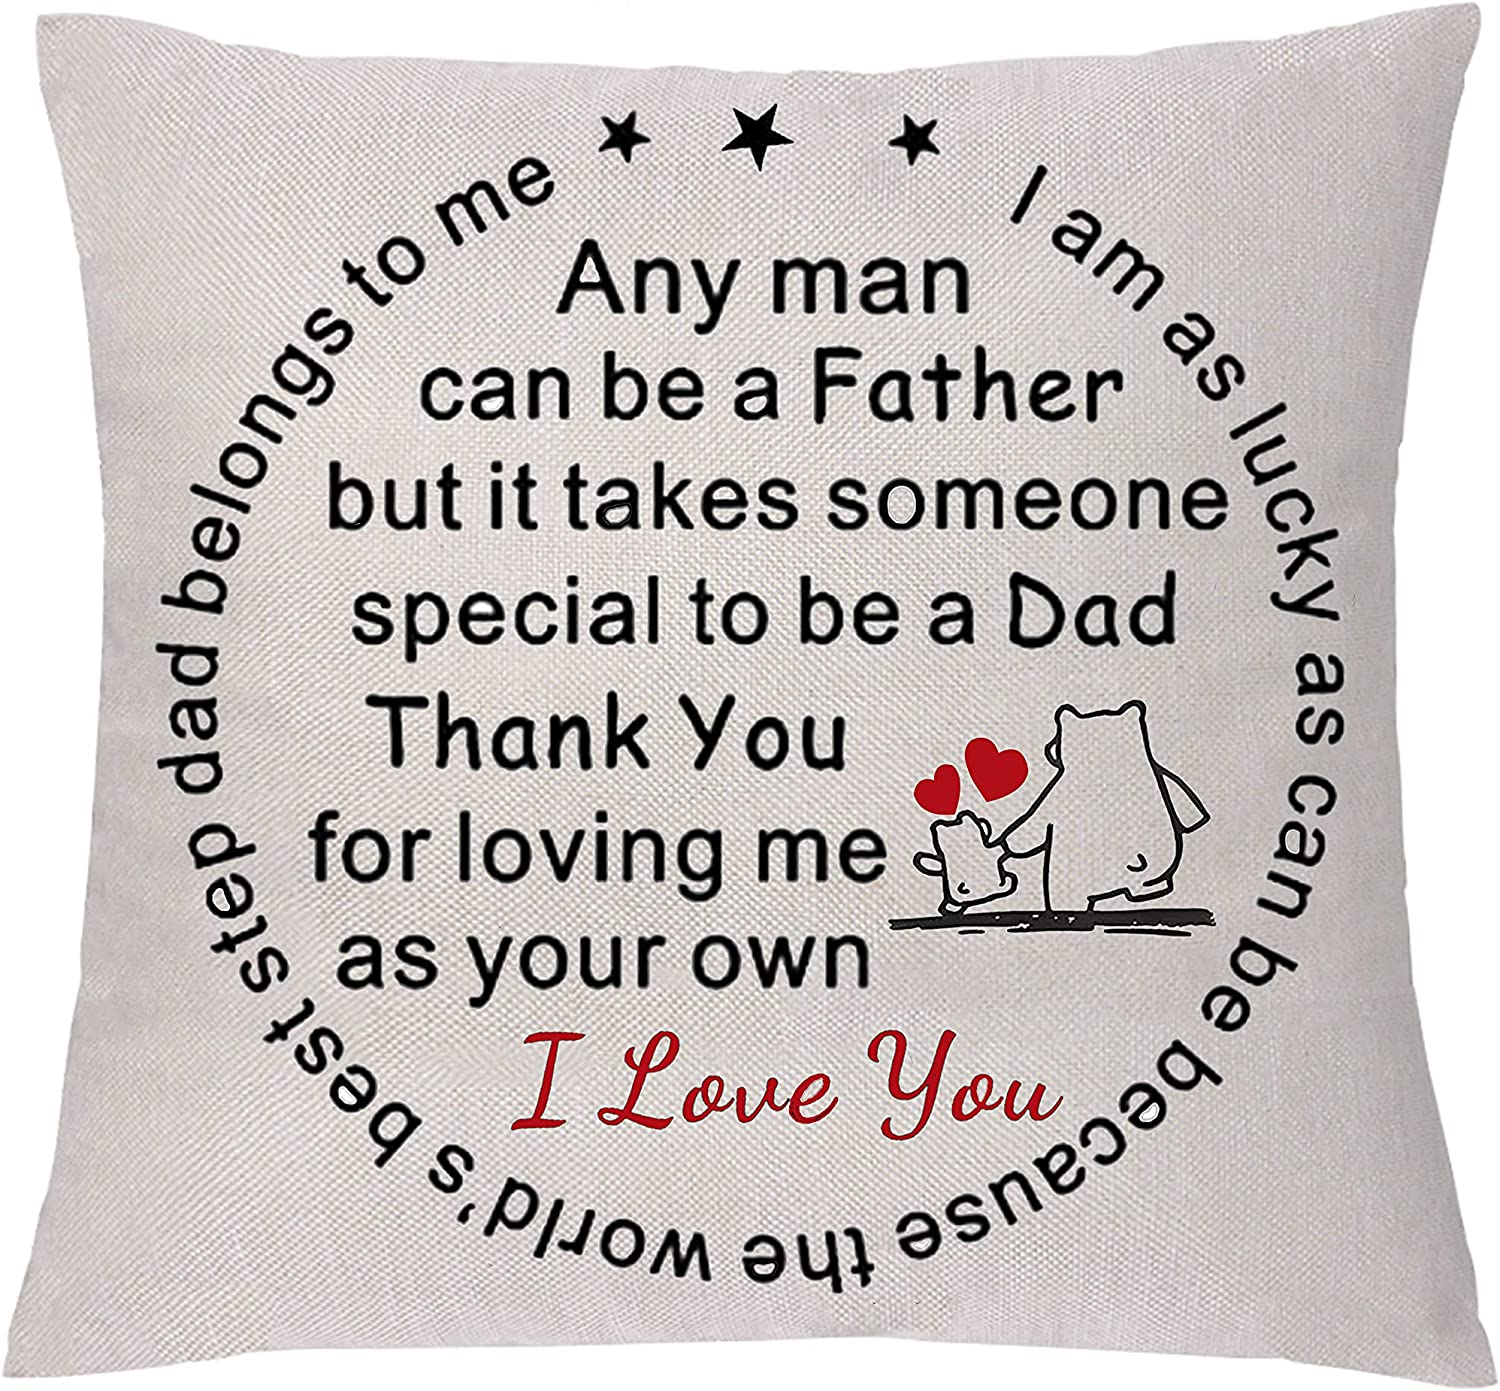 GHORIHUB Step Dad Throw Pillow Case Stepfather Fathers Day Appreciate Gift Cushion Cover Home Decor Step Daddy Birthday Gift It Takes Someone Special to be A Dad Thank You for Loving Me As Your Own